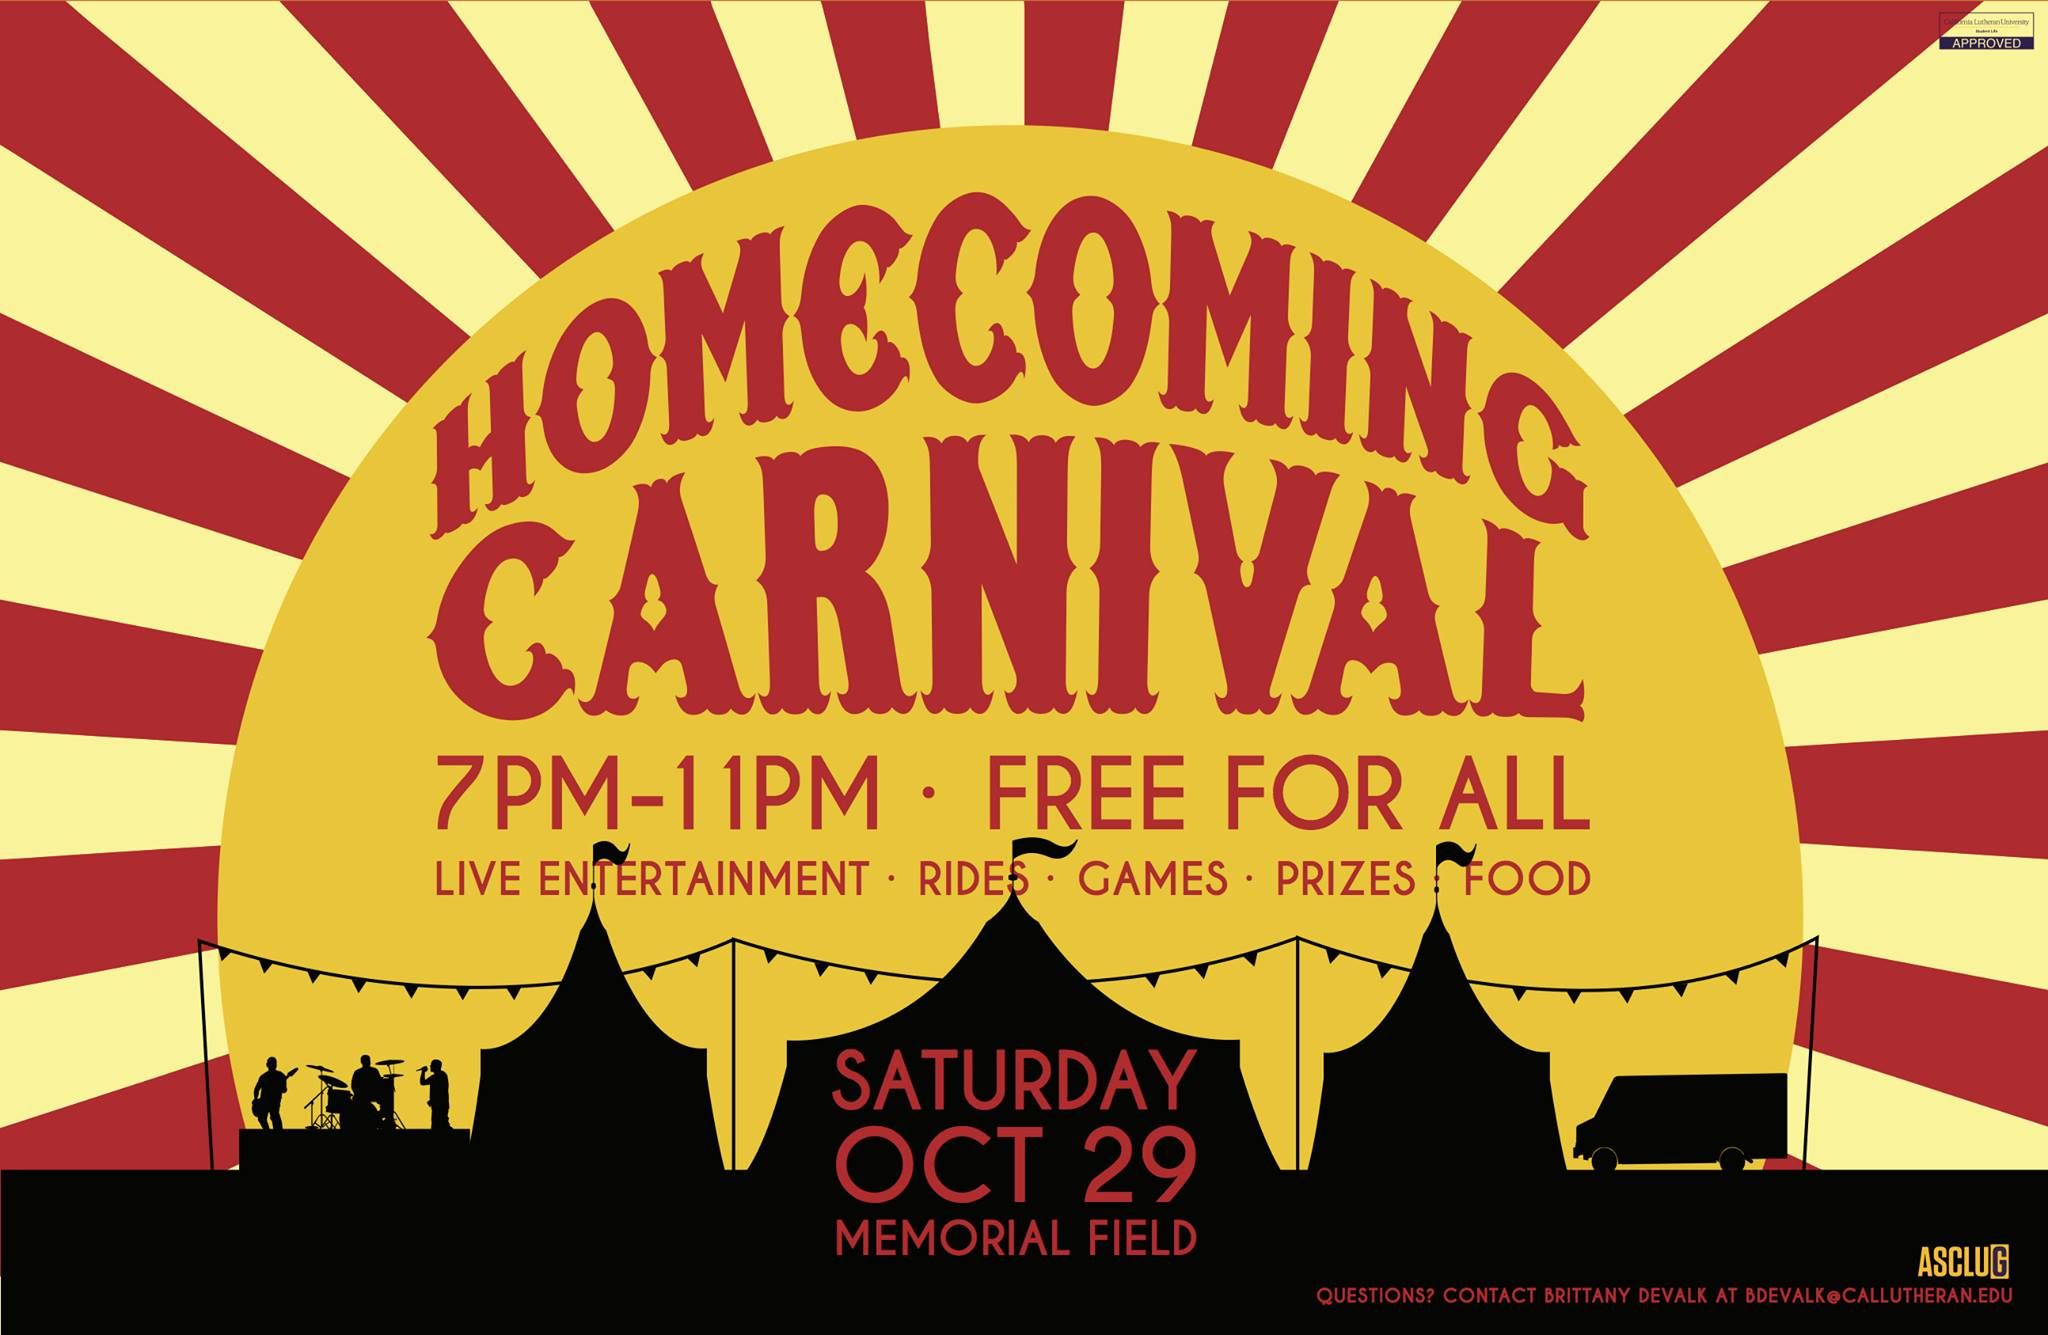 Homecoming Carnival